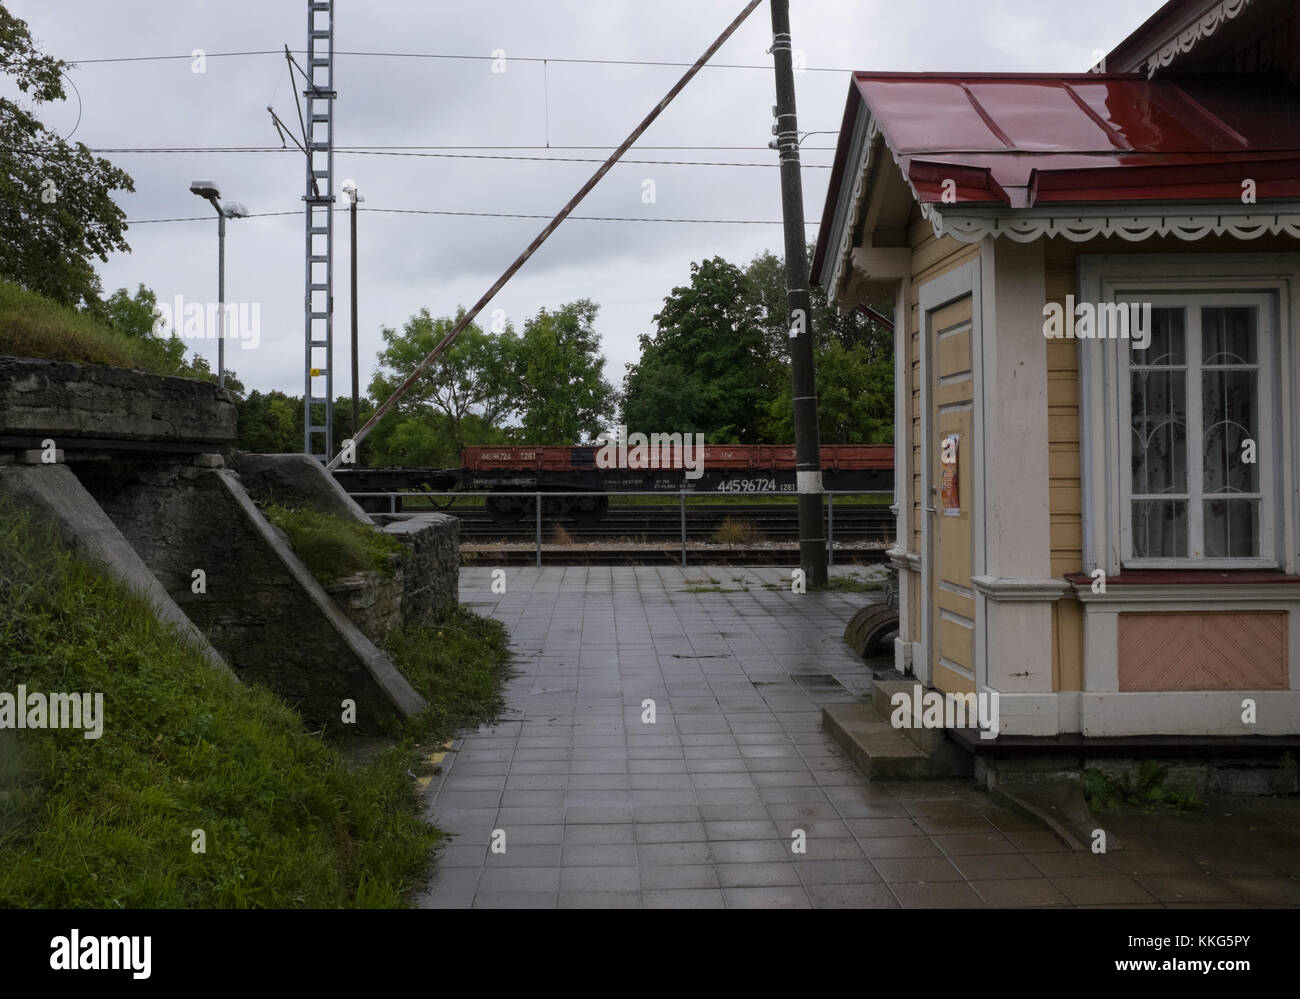 Railway station with bunker in the former closed town of Paldiski, Estonia - near the site of a Russian Nuclear - Stock Image